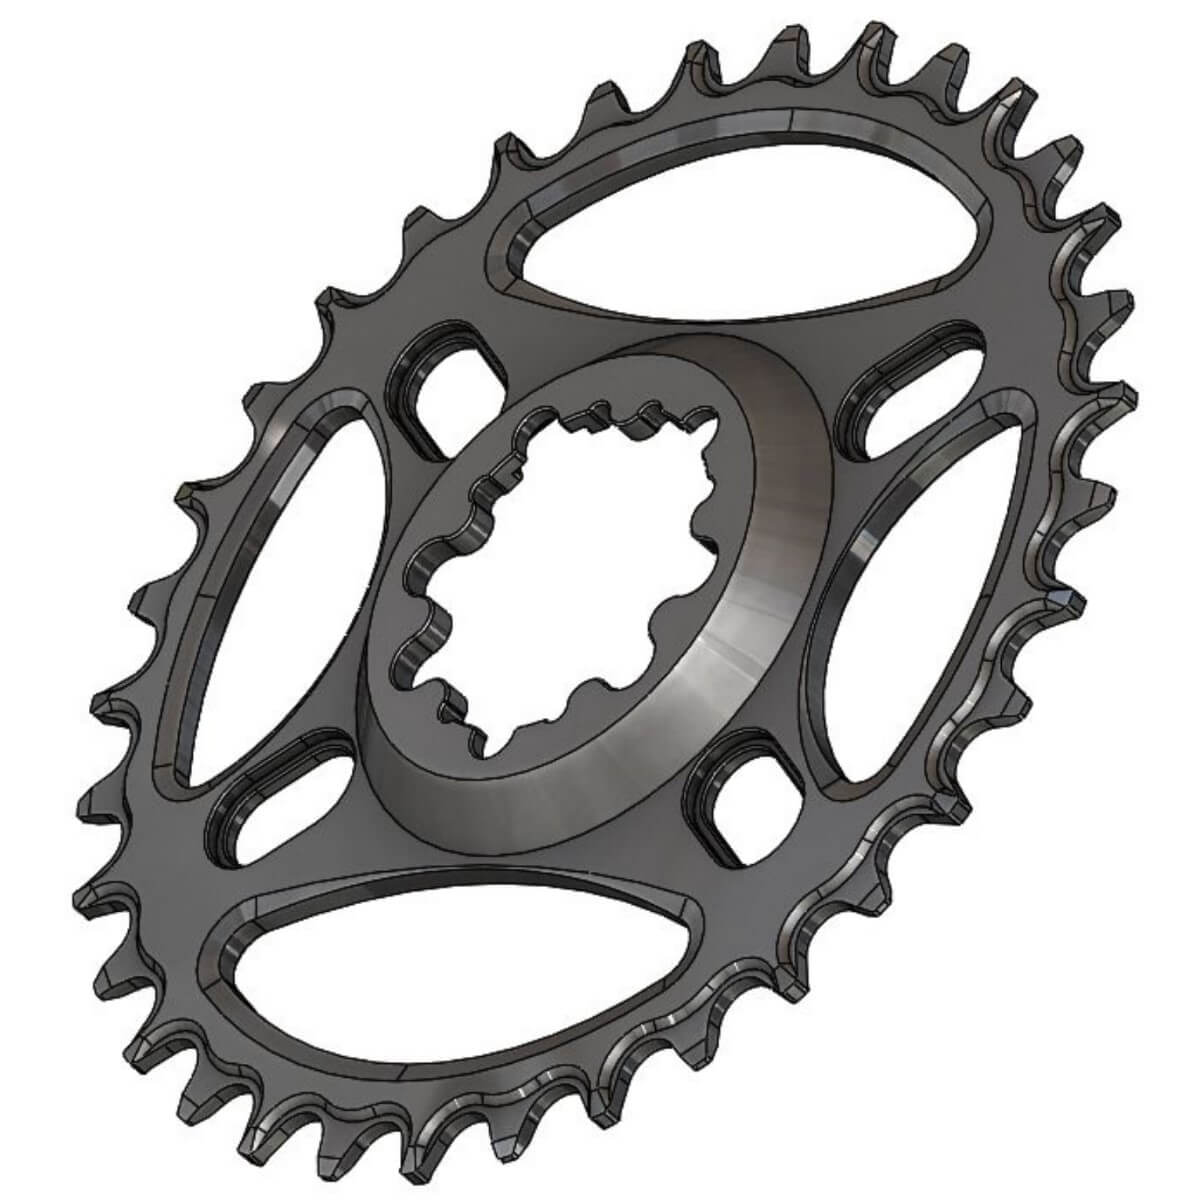 C40 Chainring Narrow Wide 30T for Sram direct. Offset 6mm.